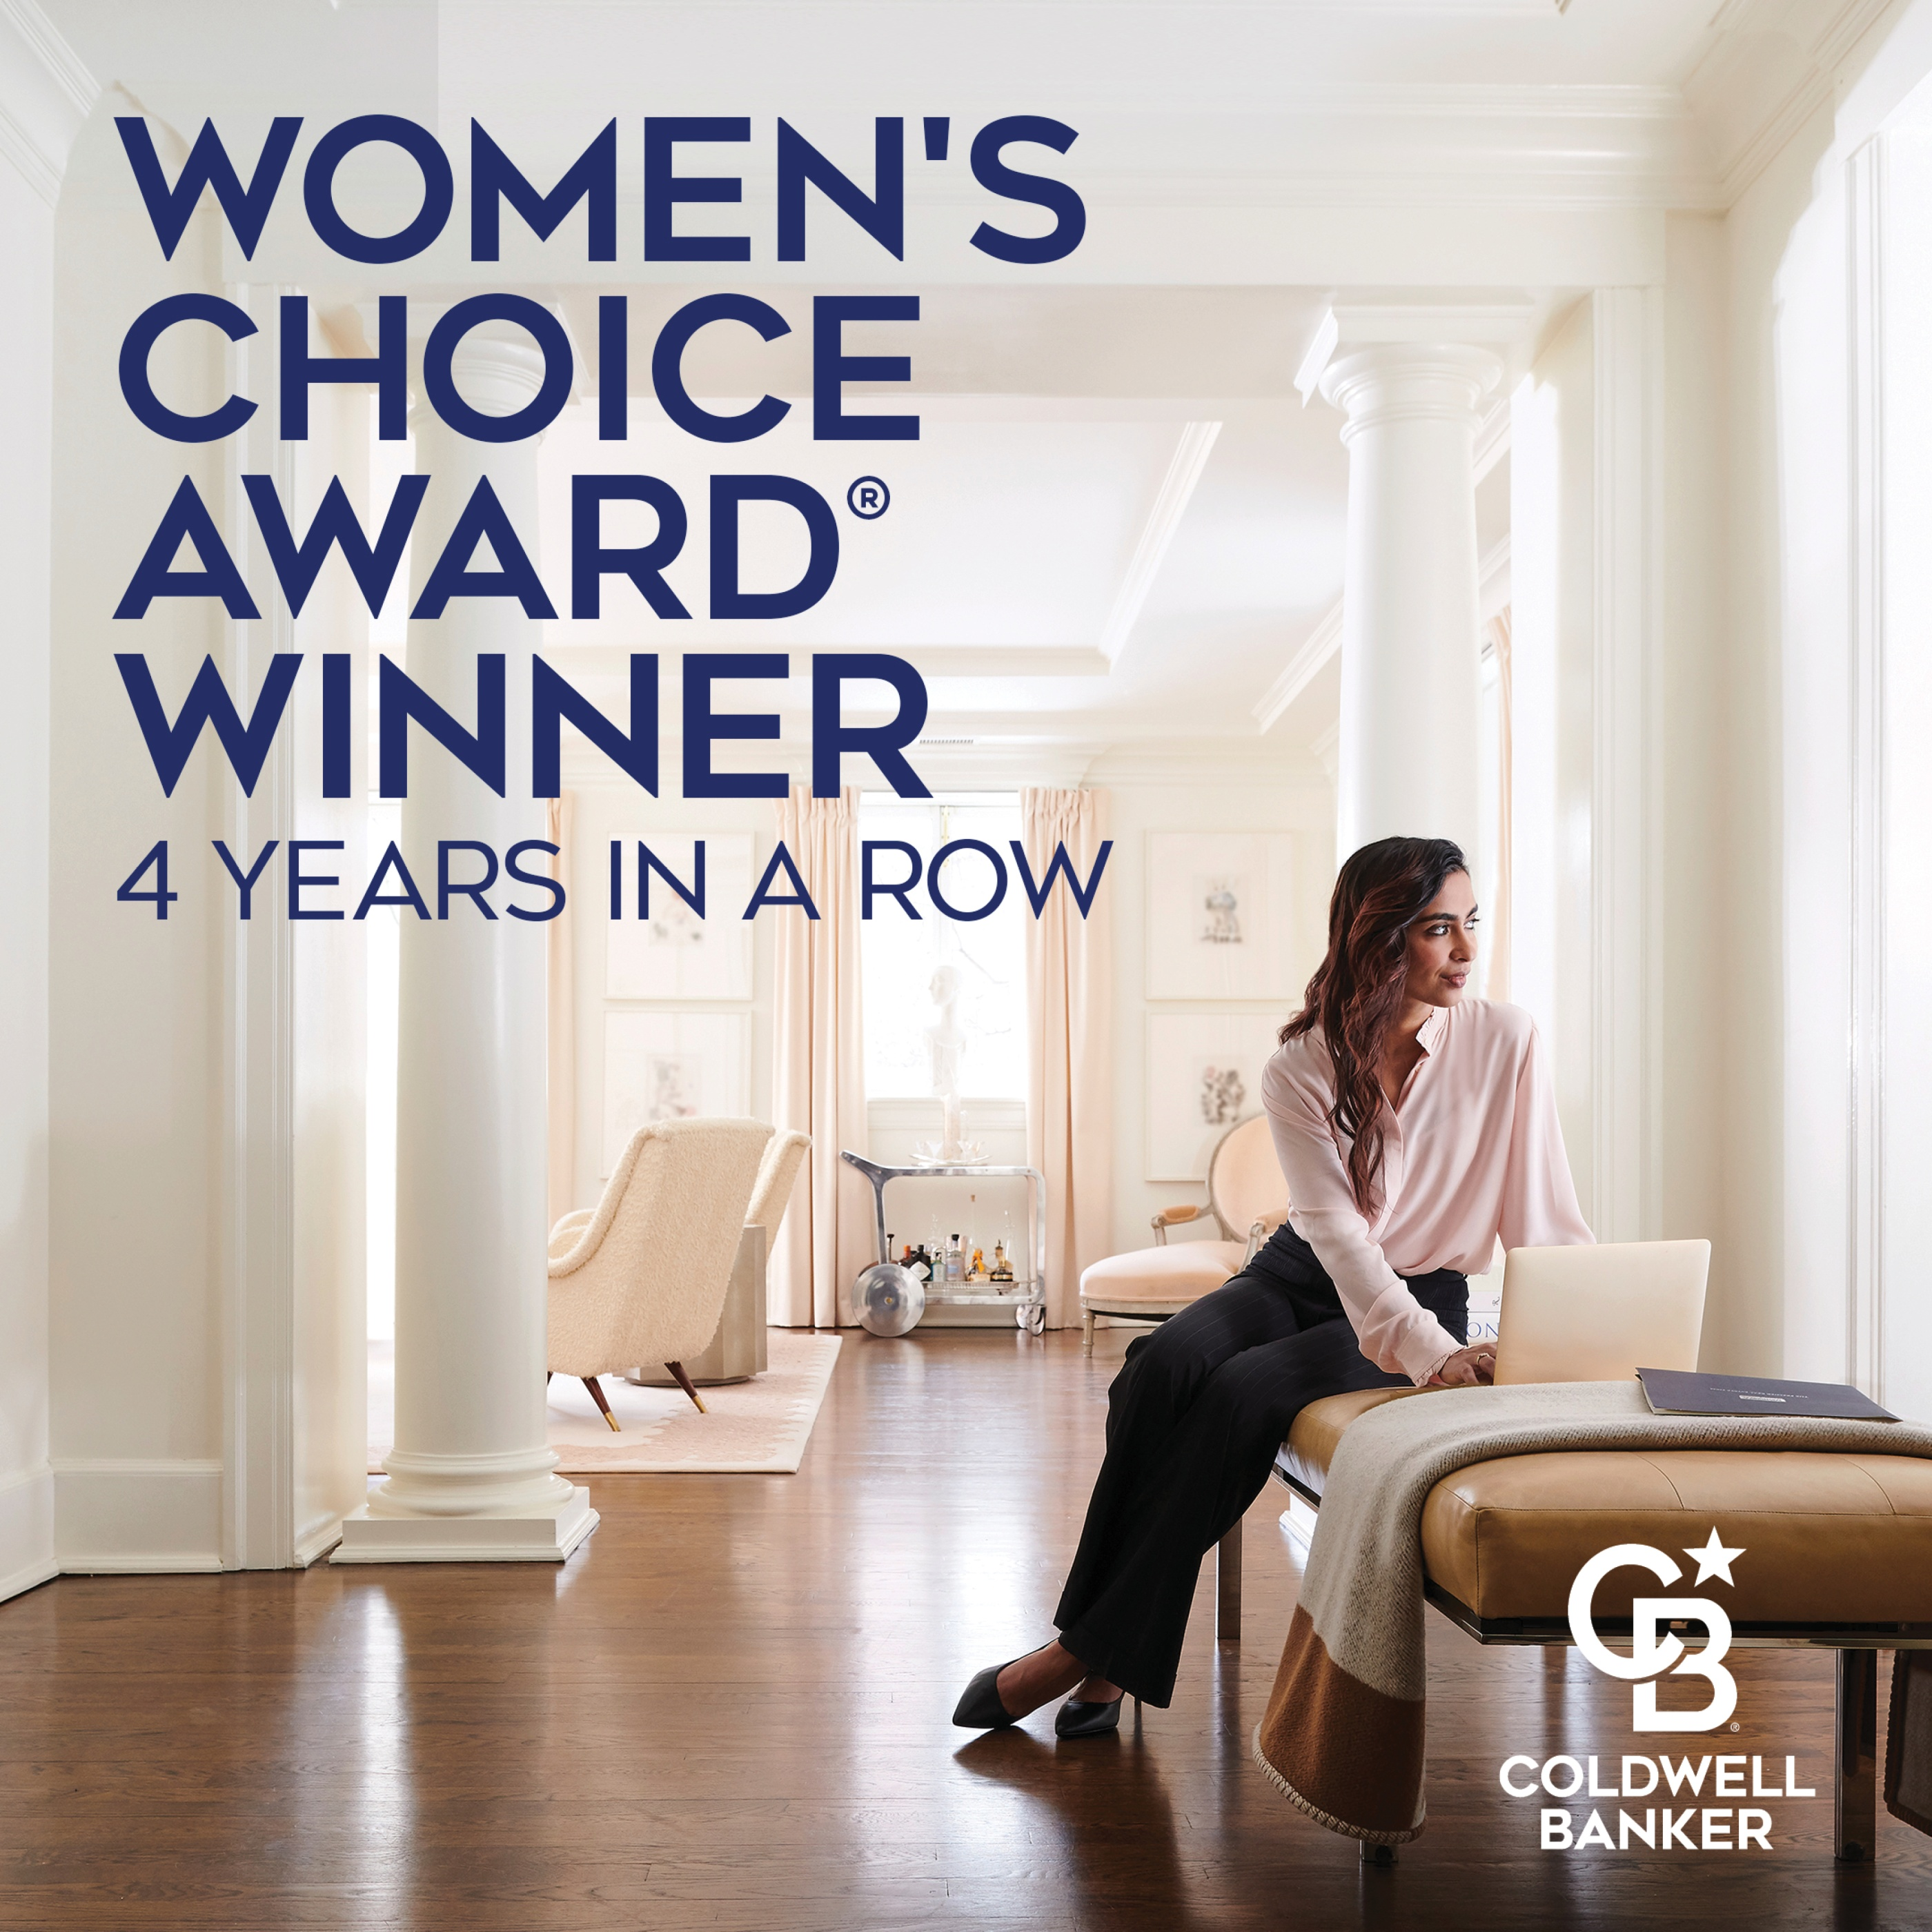 Coldwell Banker Realty Fort Lauderdale Las Olas Women's Choice Award Winner